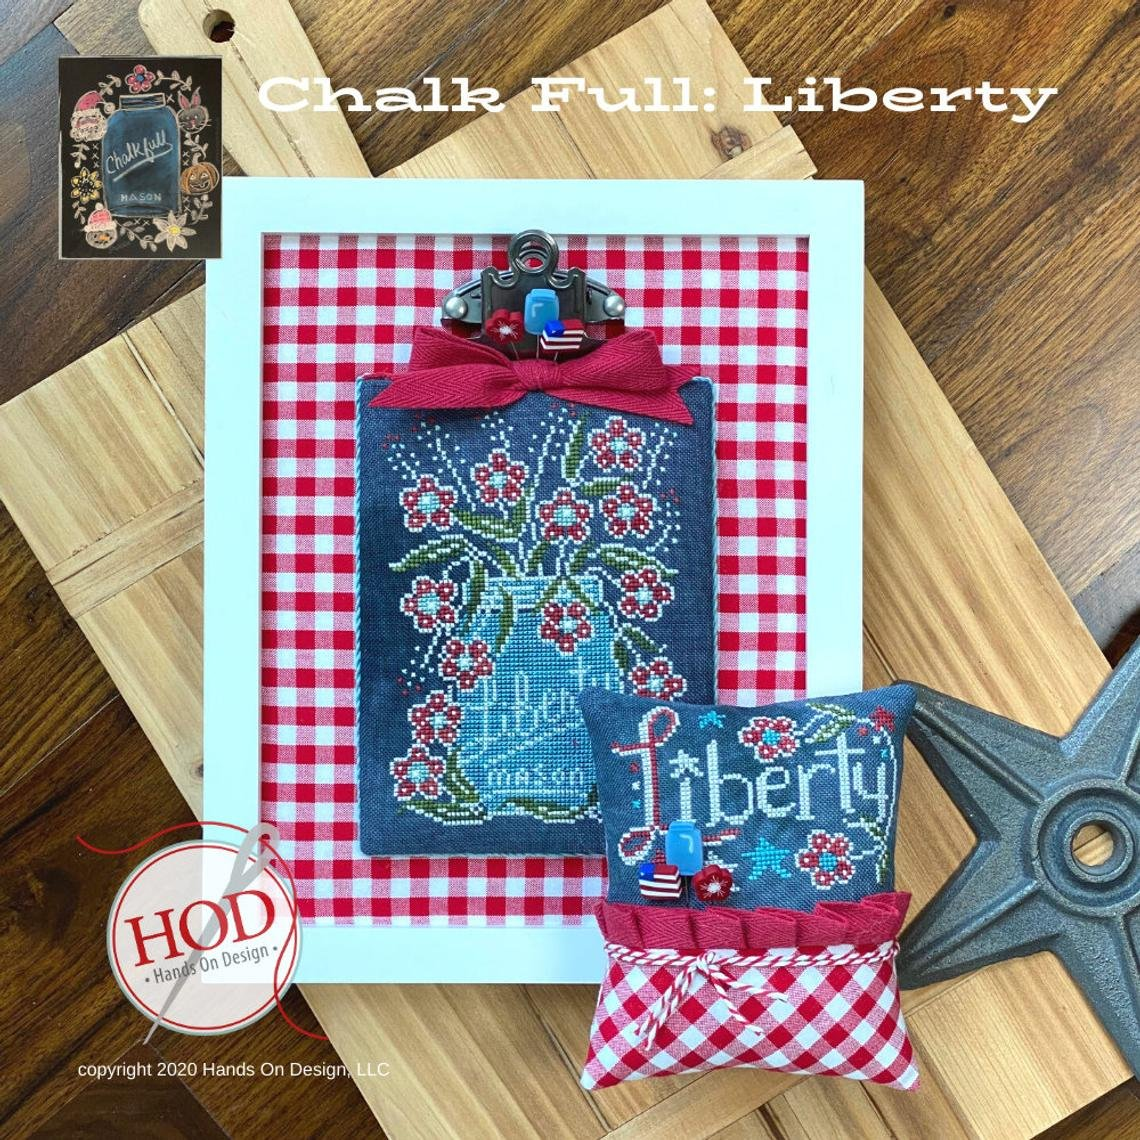 Liberty Chalk Full ~ HOD